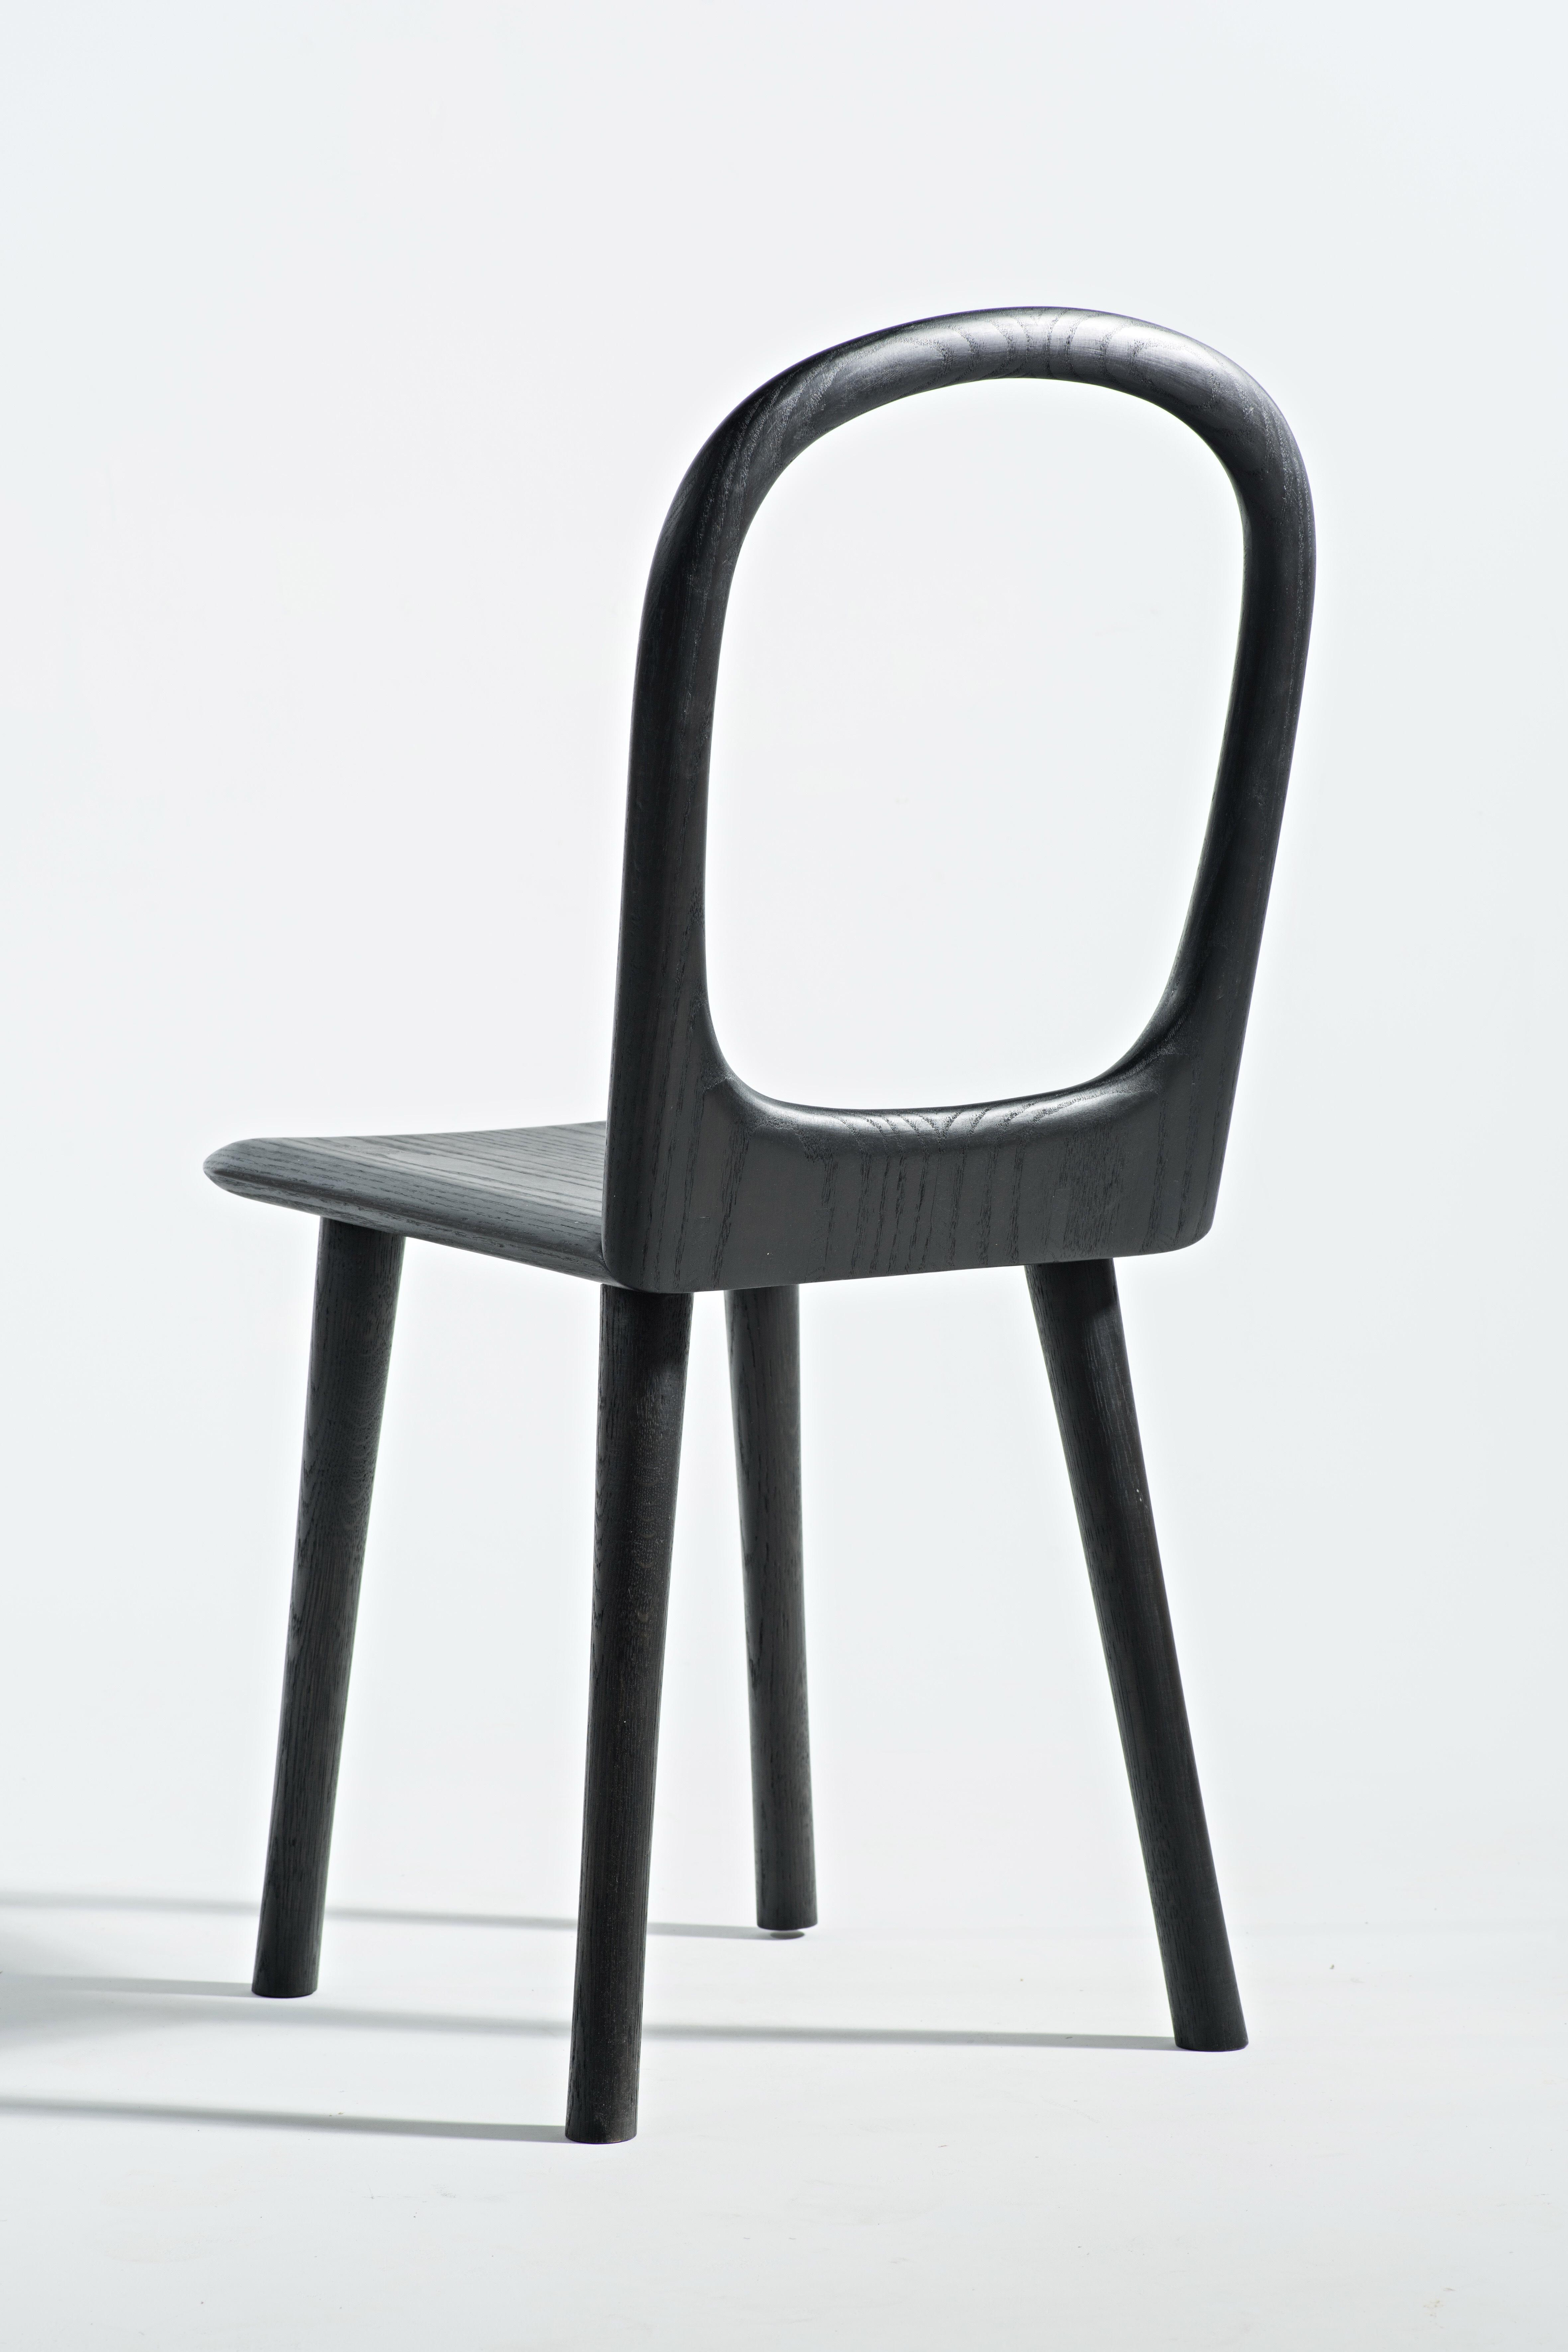 Christopher Kurtz, Bow Back Chair, USA, 2016